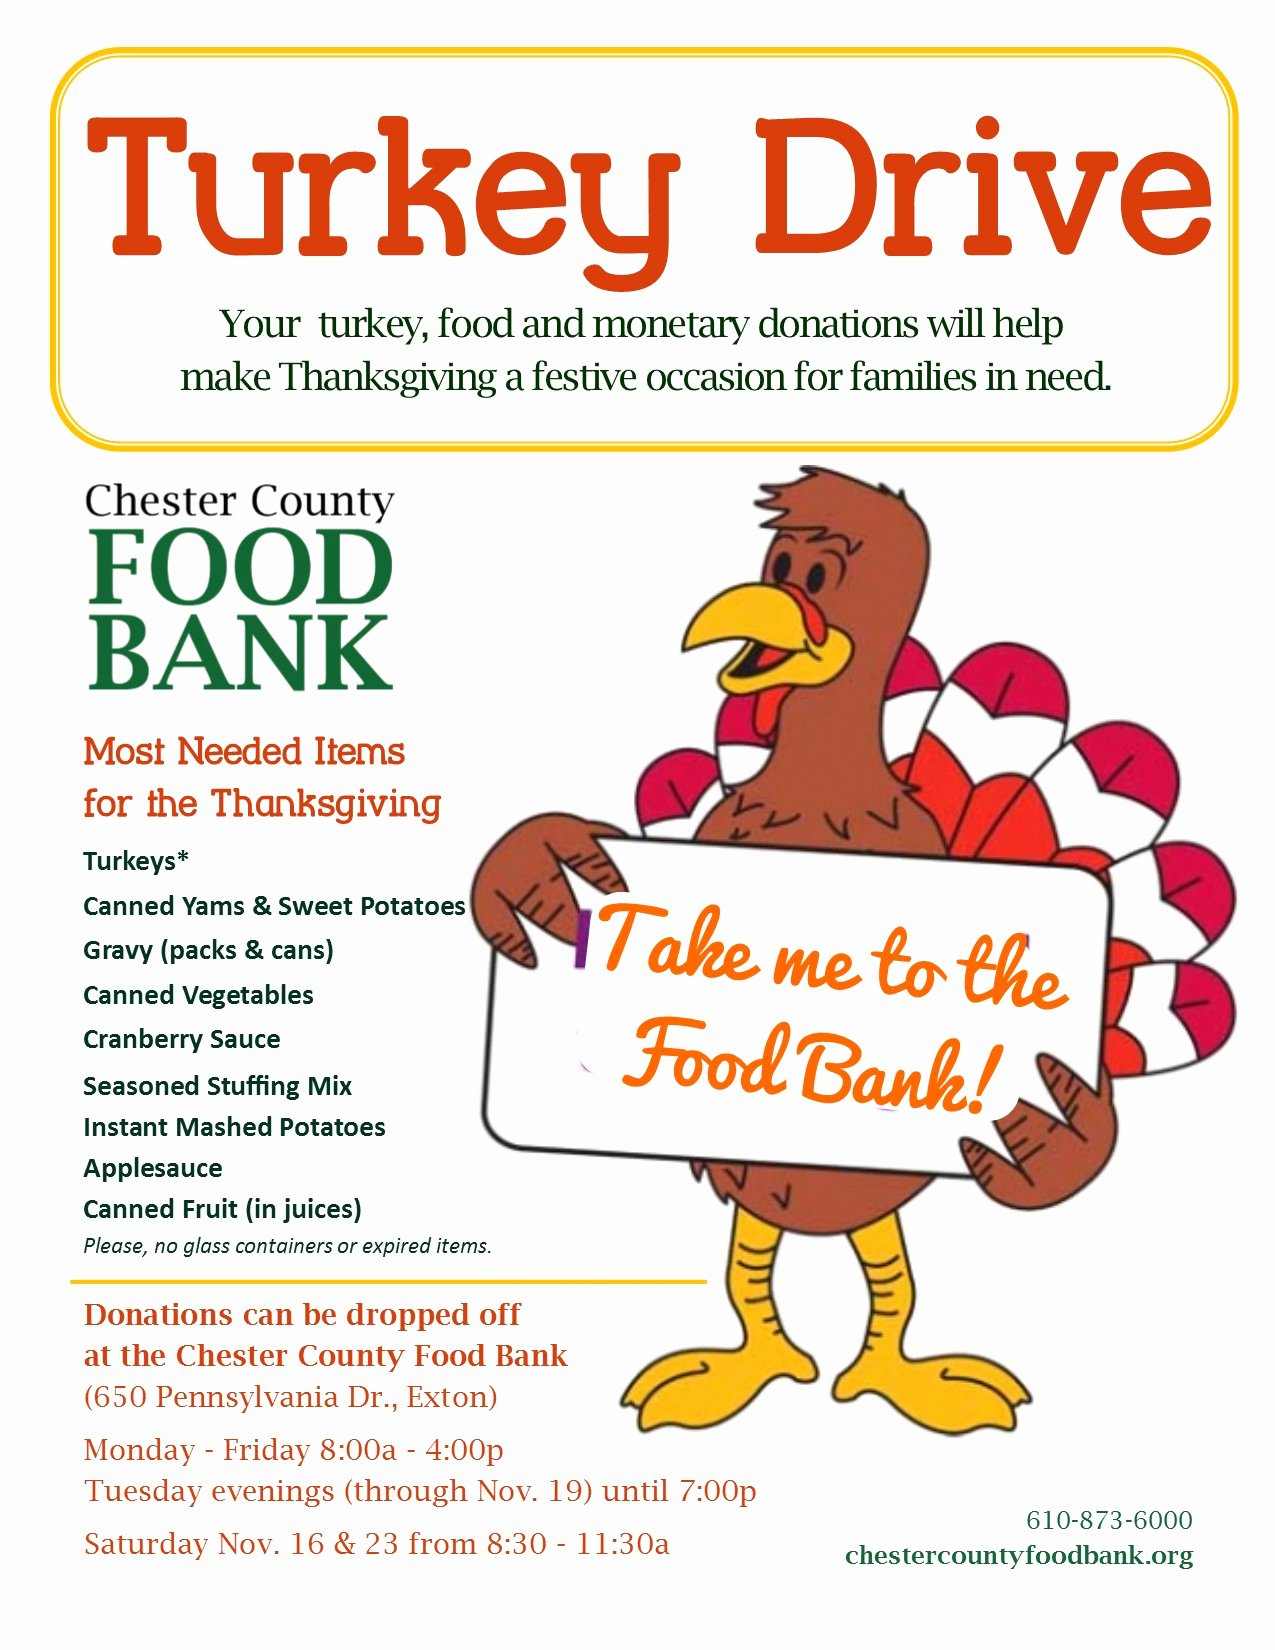 Food Drive Flyer Samples Portablegasgrillweber